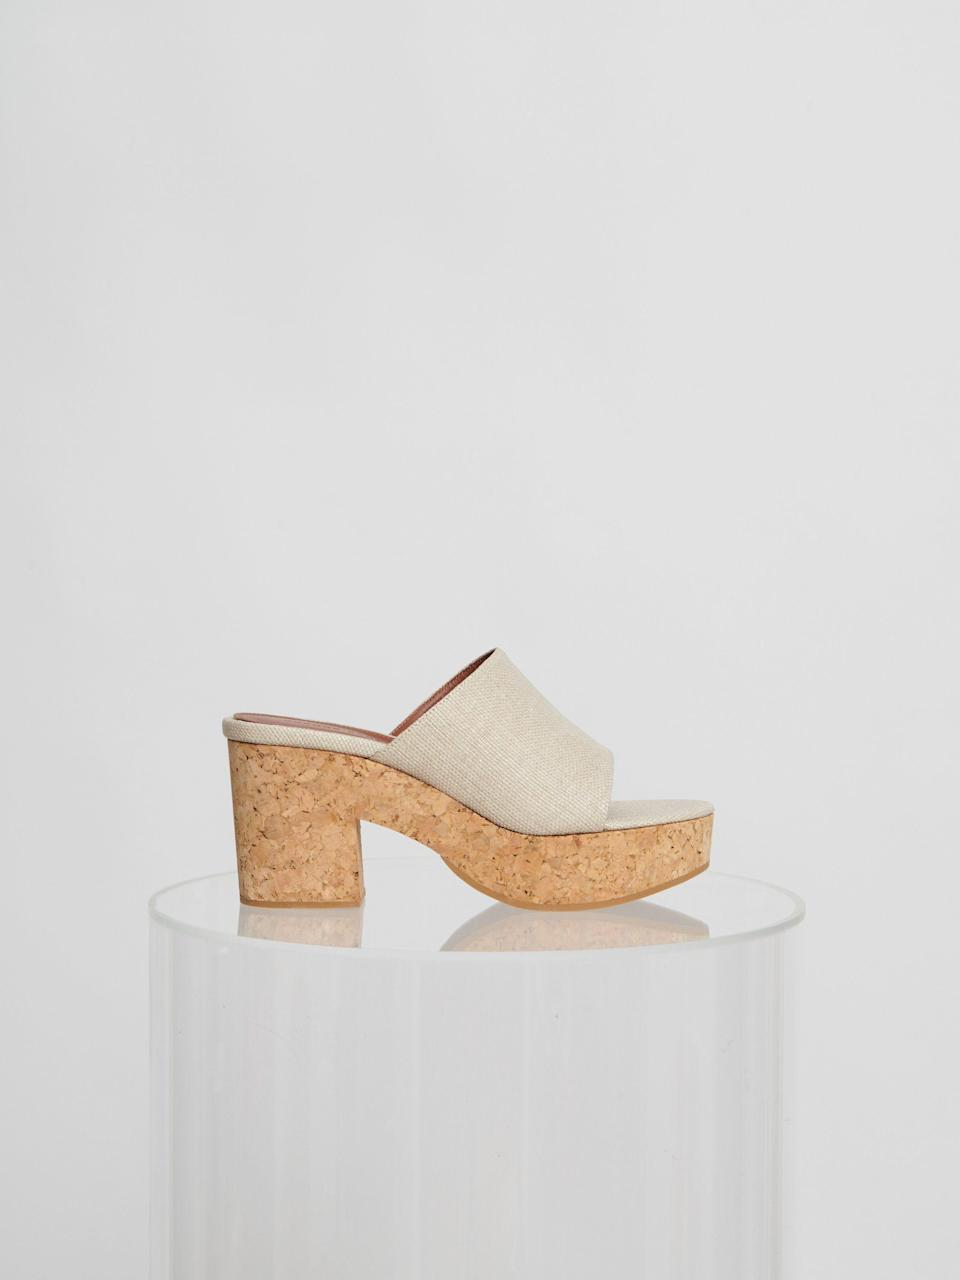 """<p><strong>Yvonne Kone</strong></p><p>yvonnekone.com</p><p><strong>2400.00</strong></p><p><a href=""""https://www.yvonnekone.com/collections/shoes/products/vanessa-sandal-sand?variant=34618924564631"""" rel=""""nofollow noopener"""" target=""""_blank"""" data-ylk=""""slk:Shop Now"""" class=""""link rapid-noclick-resp"""">Shop Now</a></p><p>The cork footbed makes for a super light and easy to wear platform that will never go out of style.</p>"""